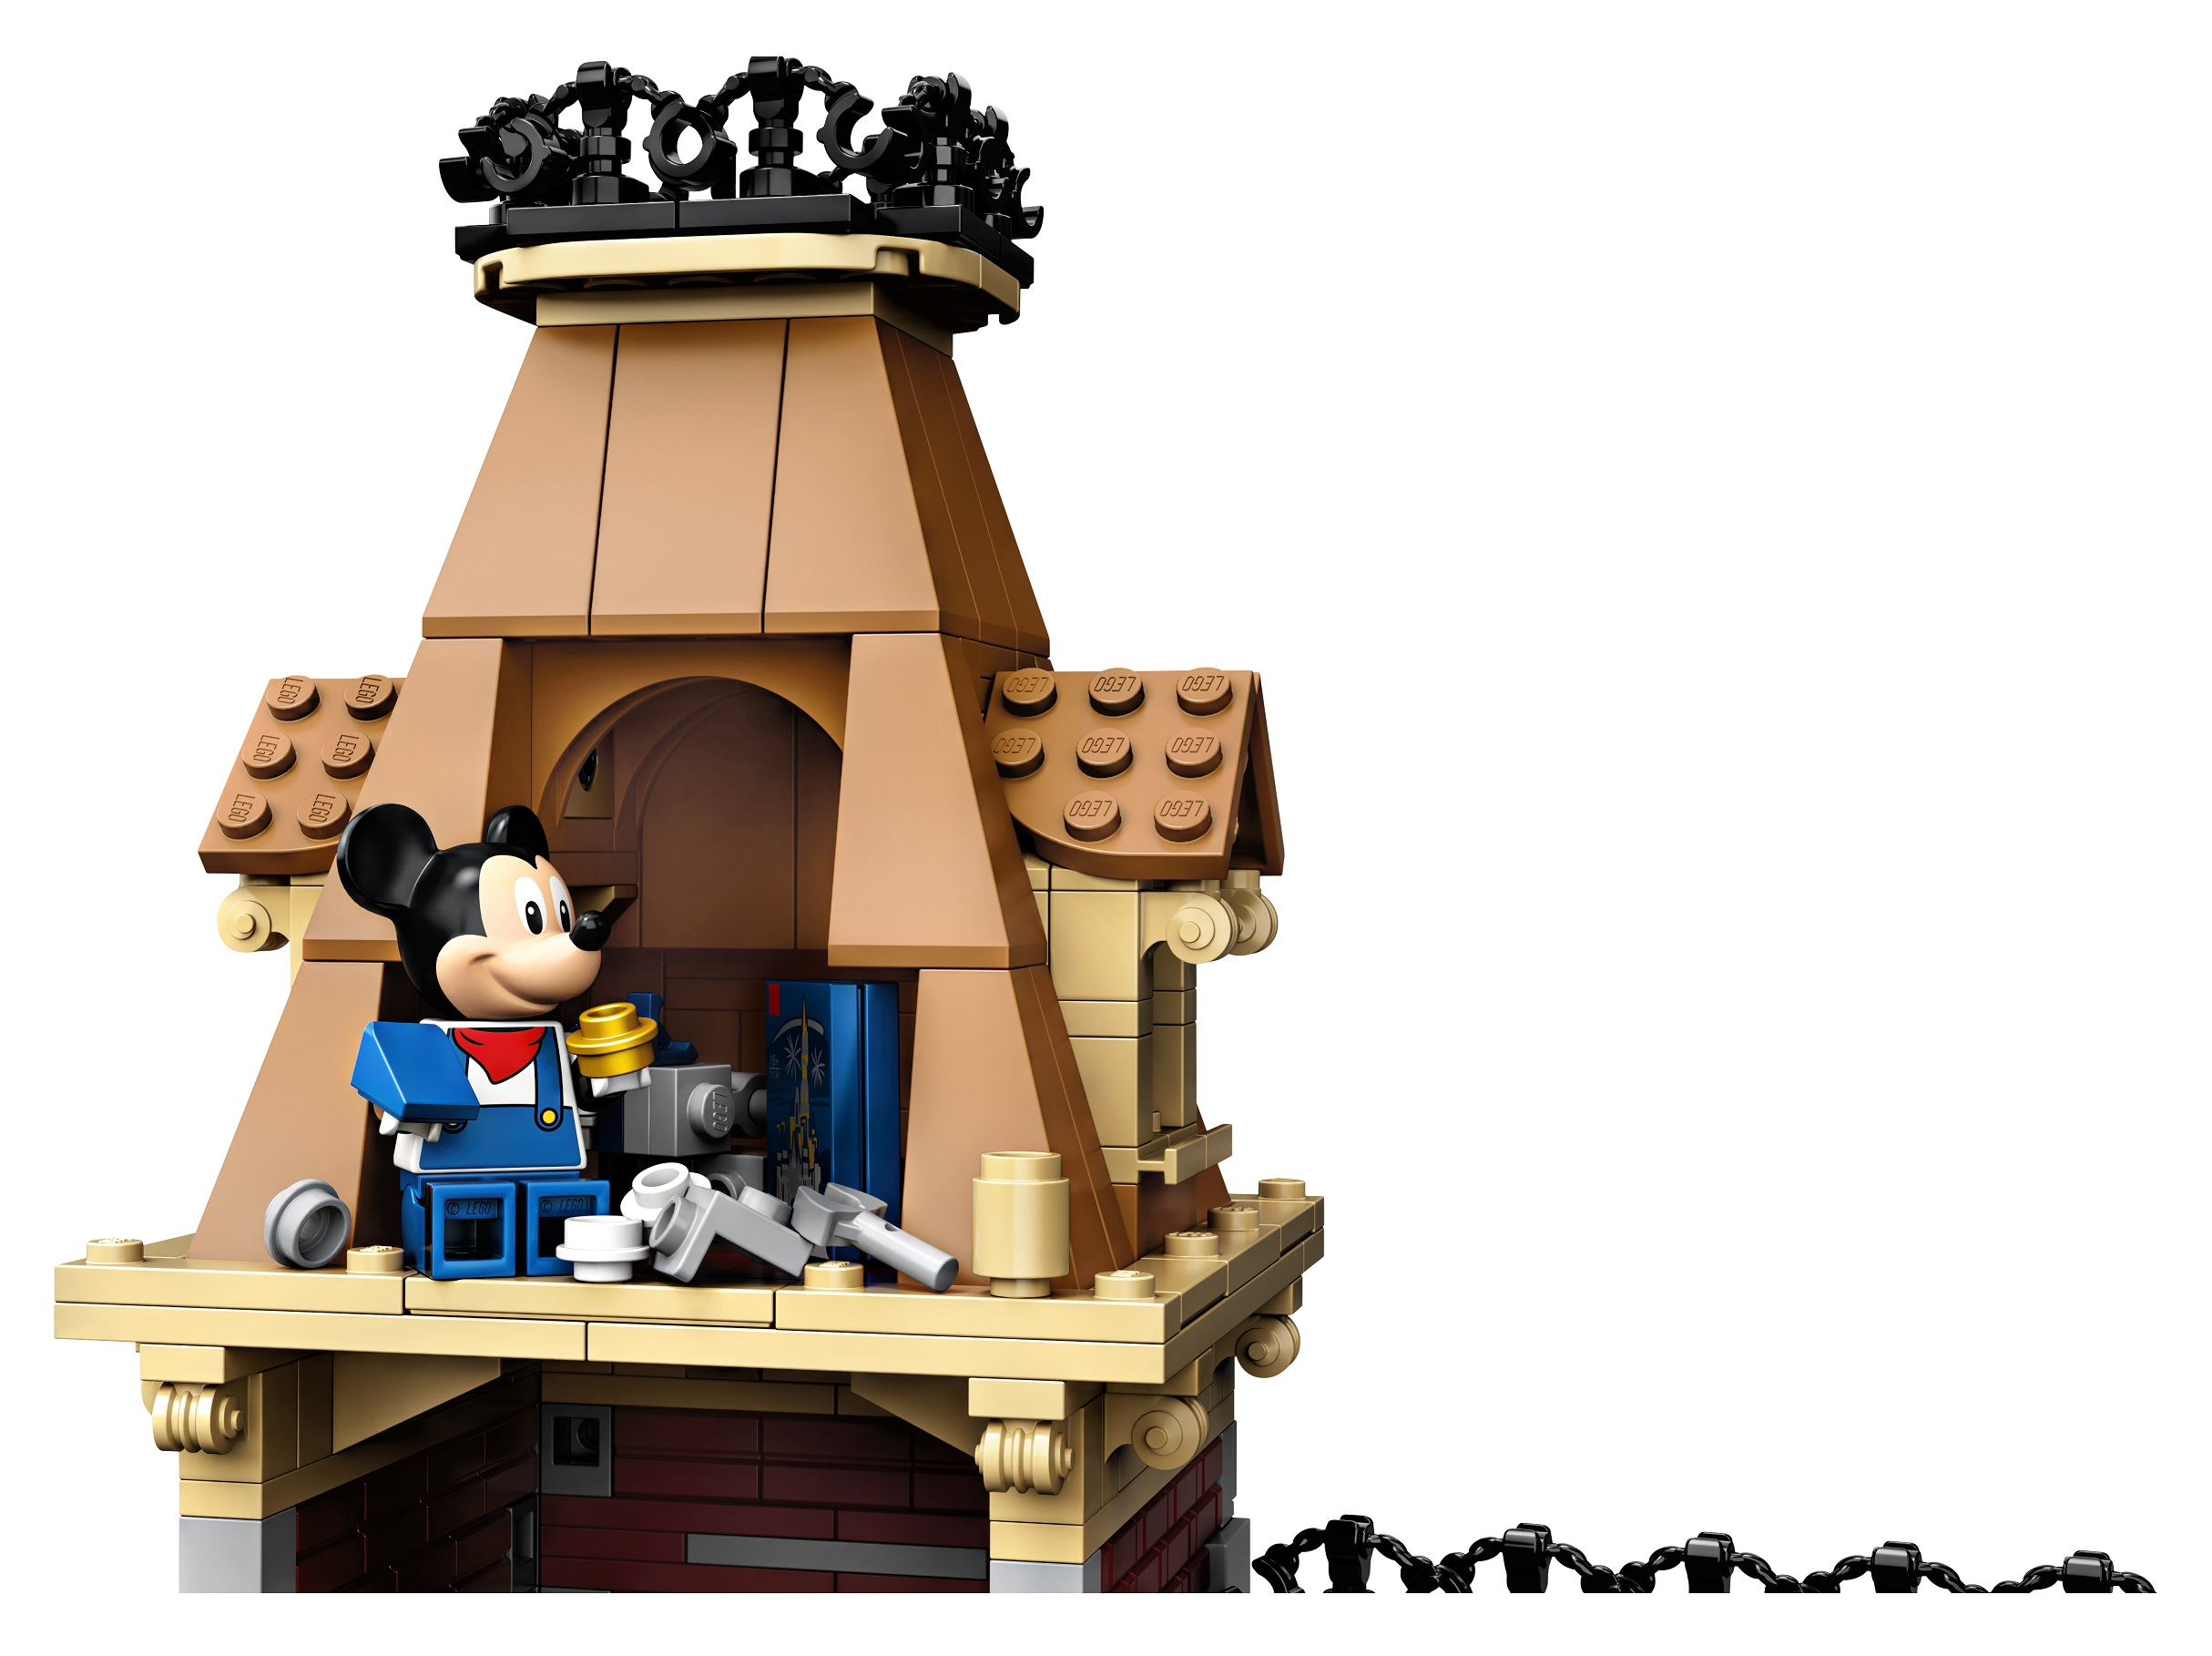 All aboard 71044 LEGO Disney Train and Station – Jay's Brick